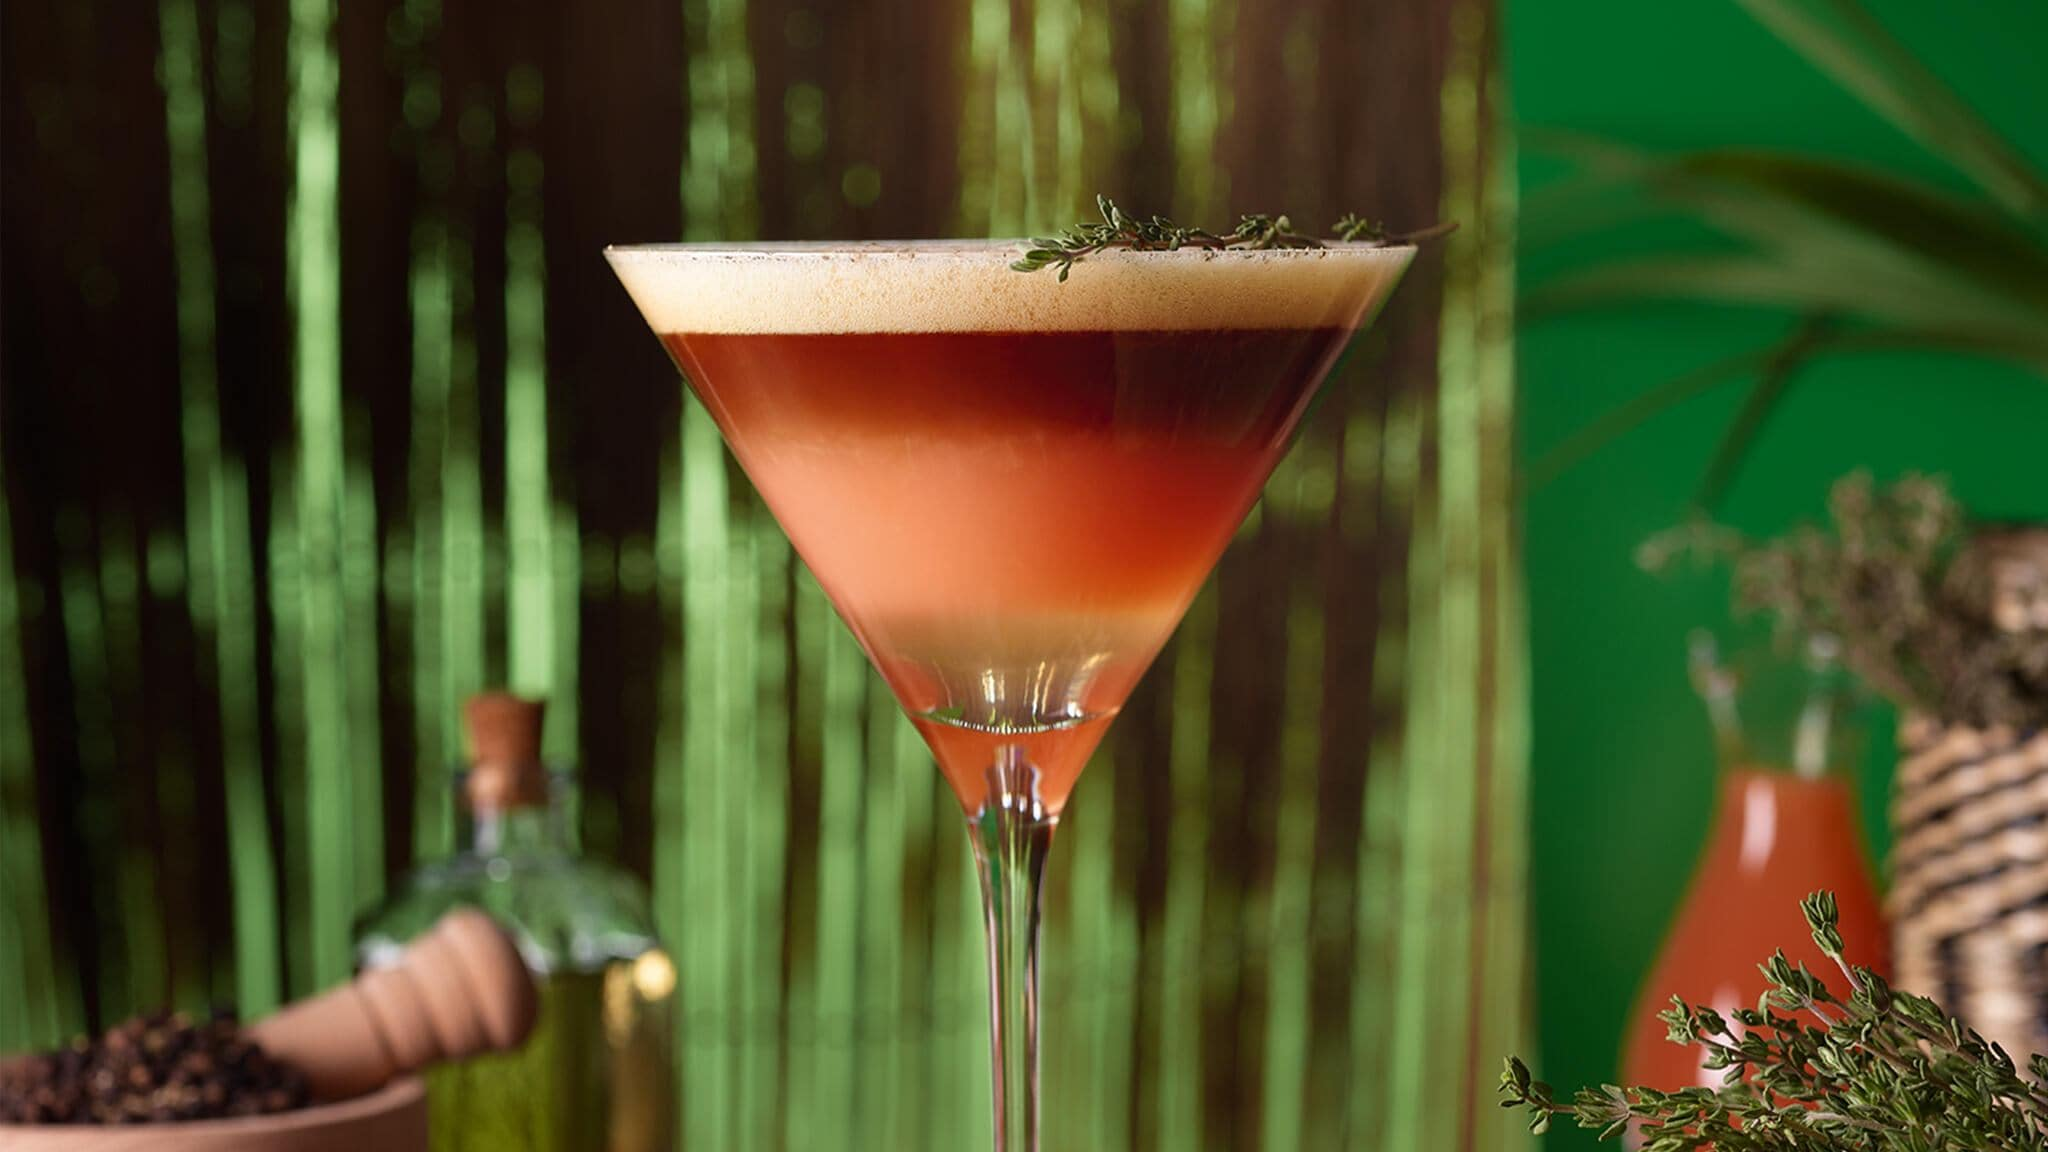 Grapefruit & Thyme Coffee Cocktail